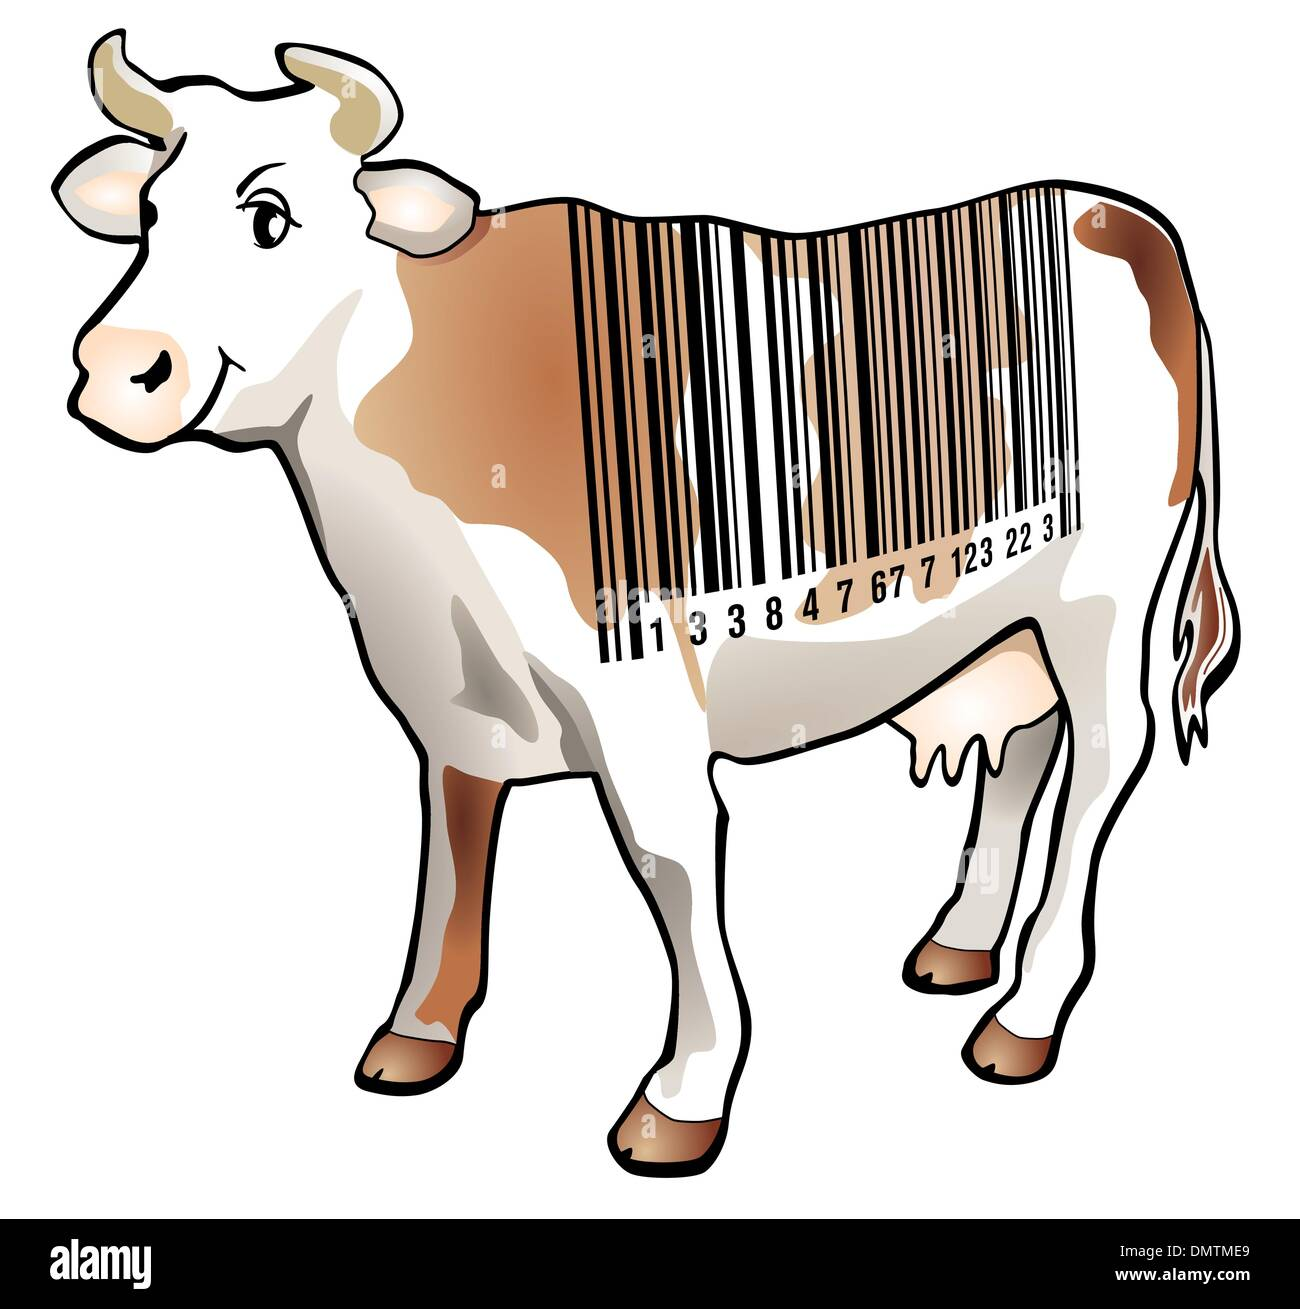 Scan cow - Stock Image